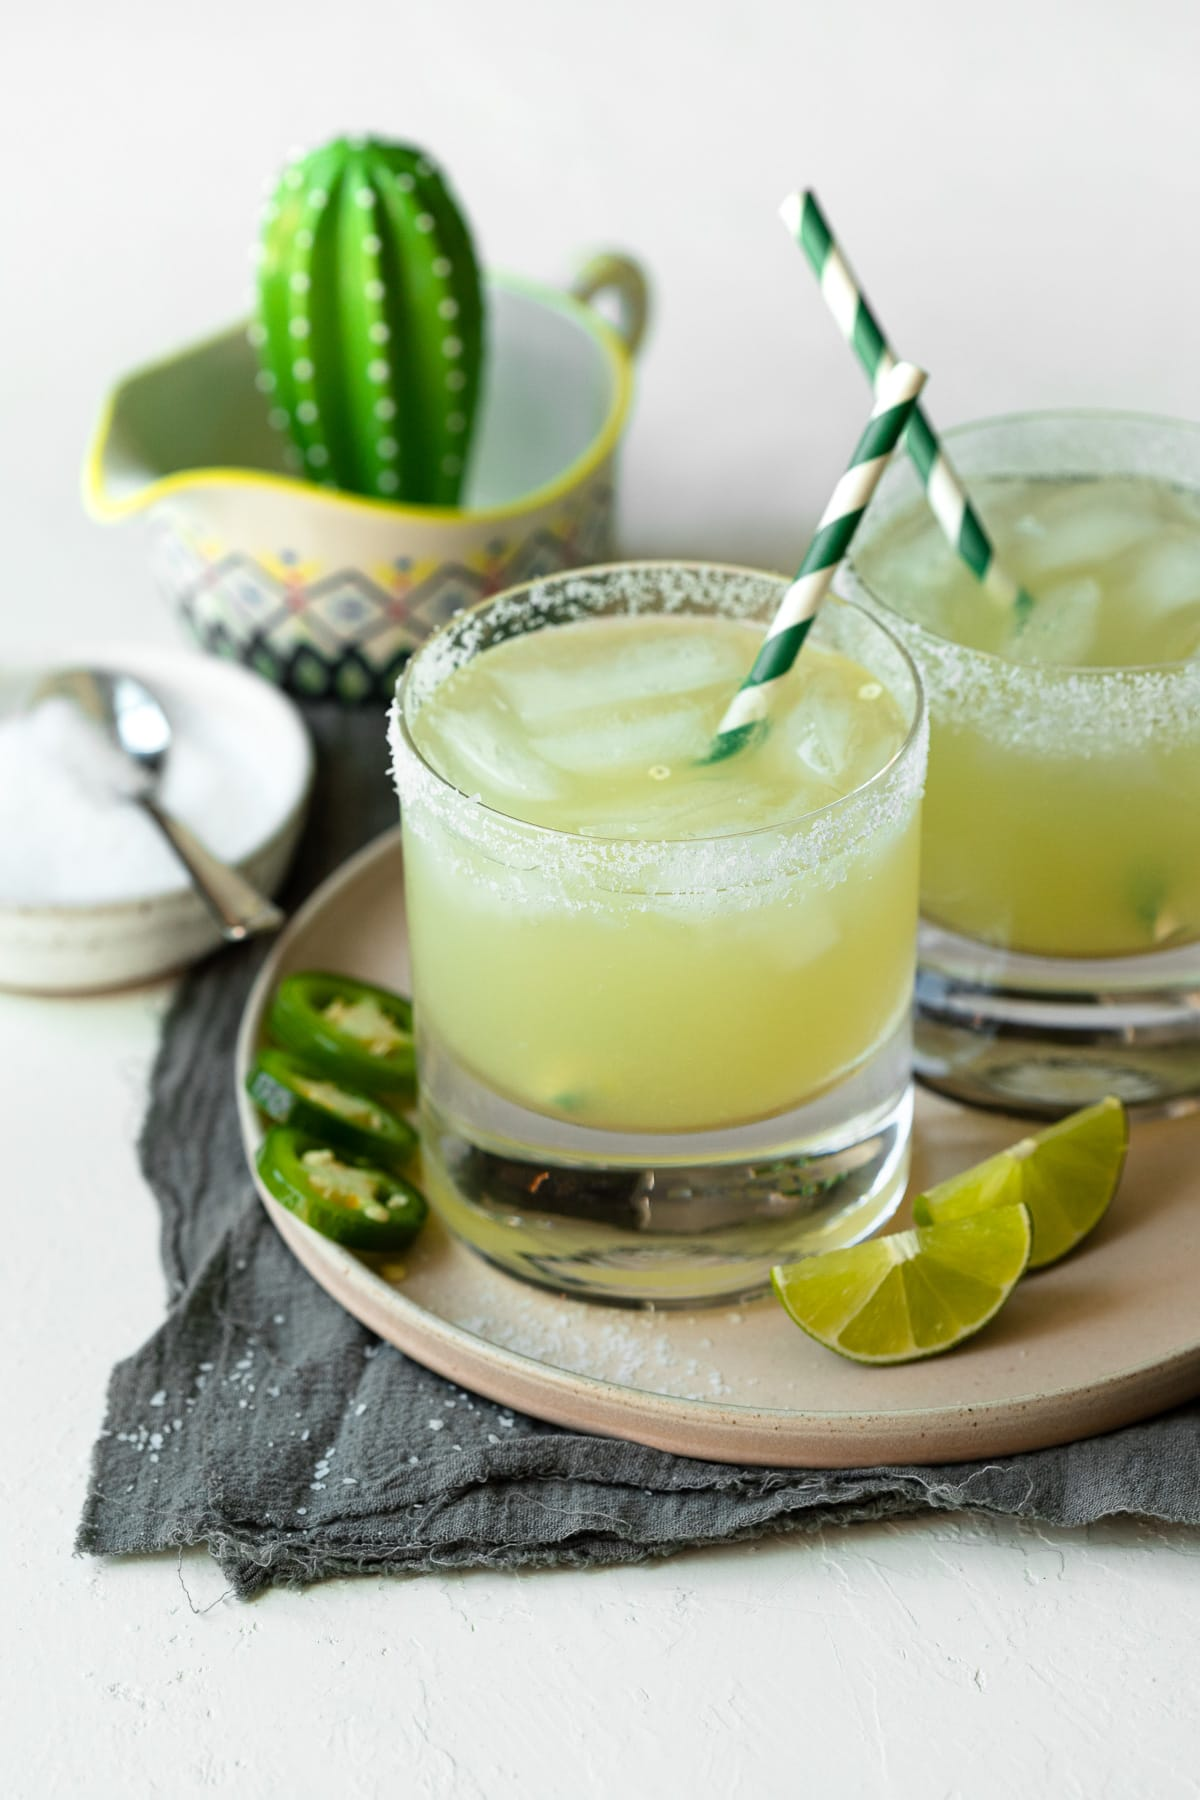 Two margaritas on the rocks, with striped straws.